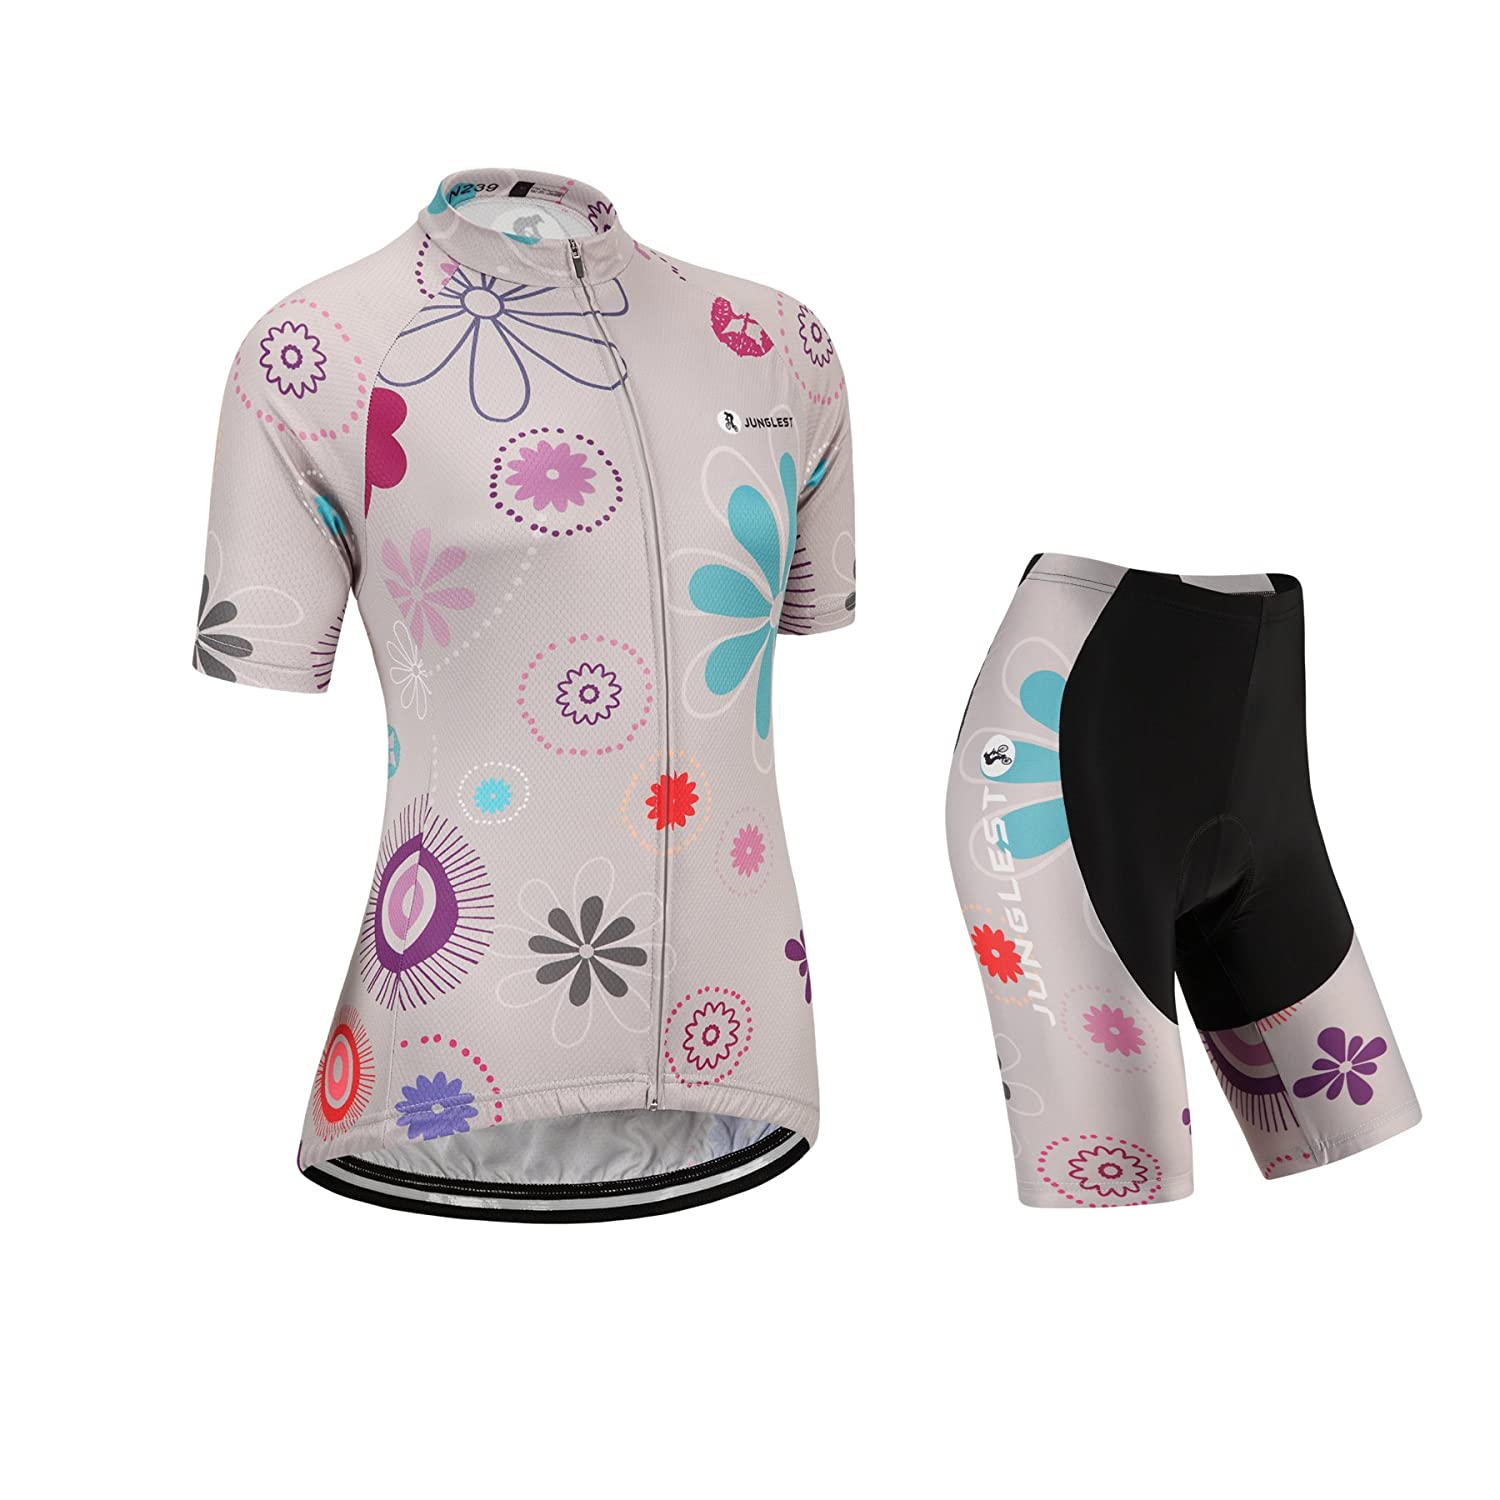 Cycling jersey Set, Maillot de Cyclisme Women Femme Short sleeve Manches Courtes(S~5XL,option:bib Cuissard,3D pad Coussin) N222 jngles